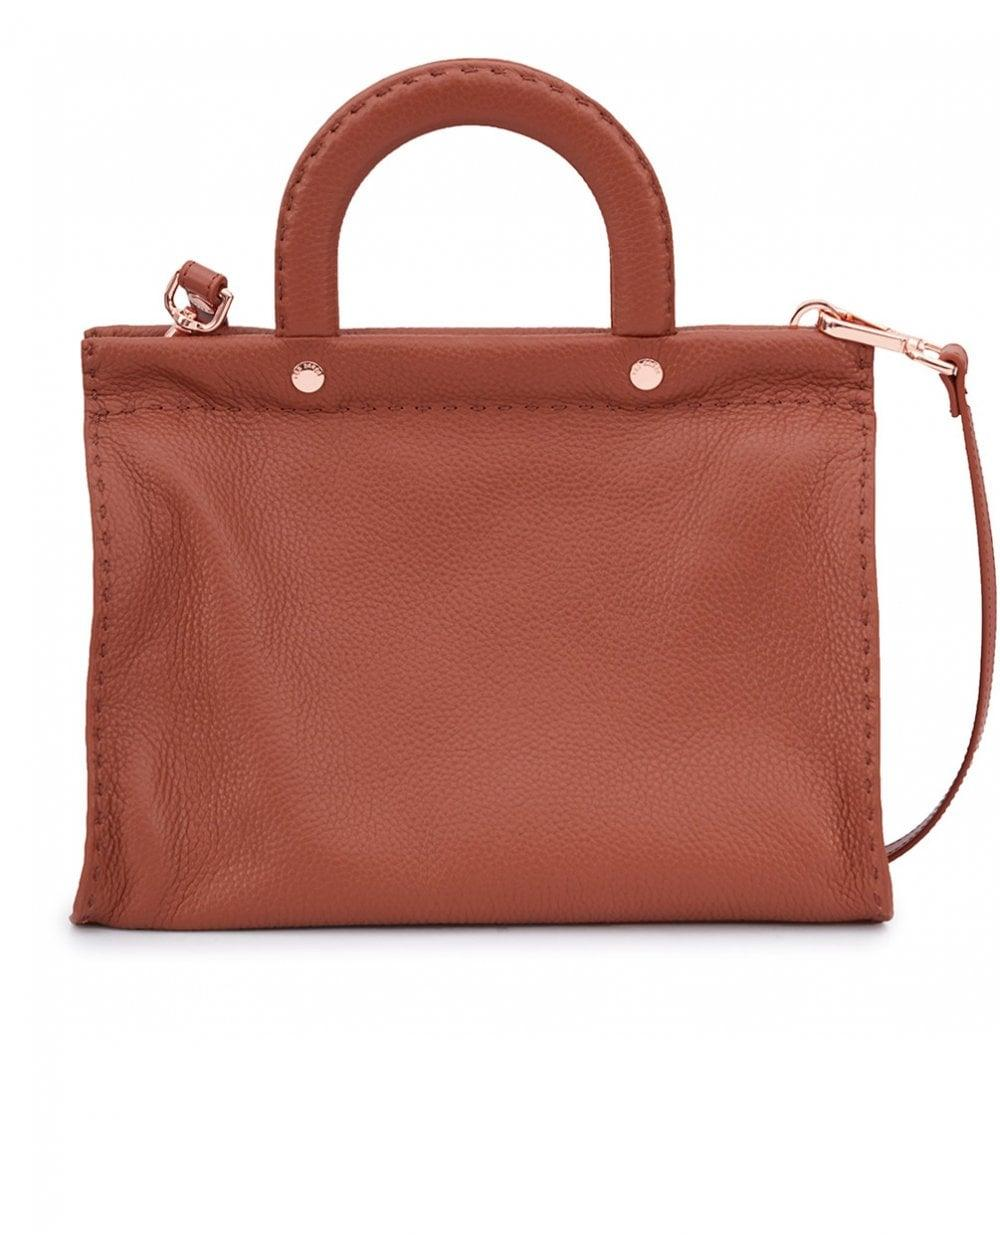 ac701a6b6d Ted Baker Leather Stitch Detail Small Tote Bag in Brown - Lyst